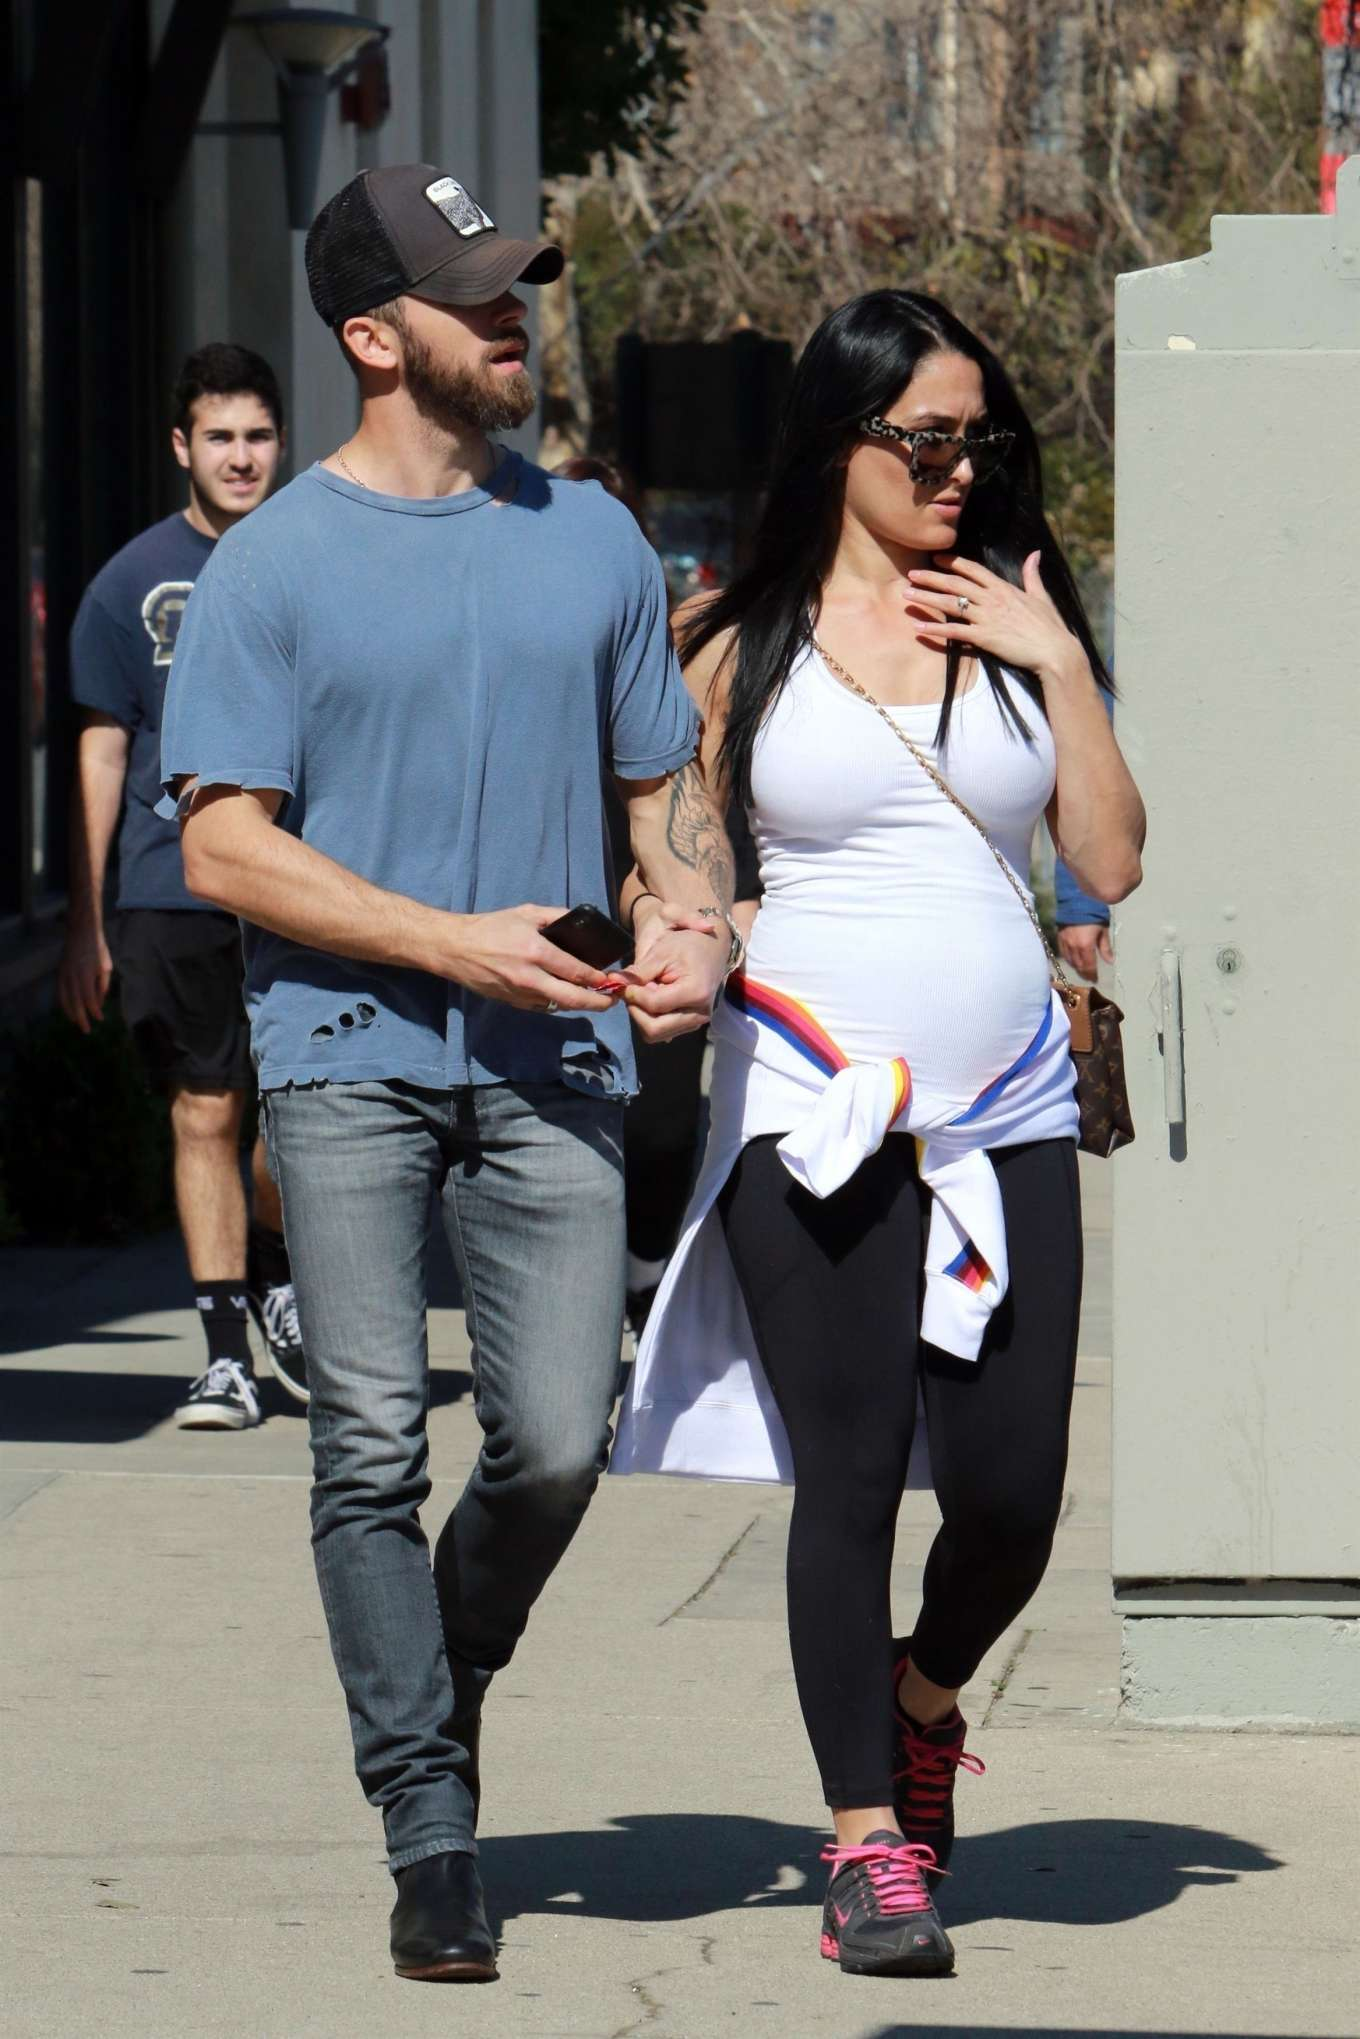 Nikki and Brie Bella - Seen at the Farmers Market in Studio City